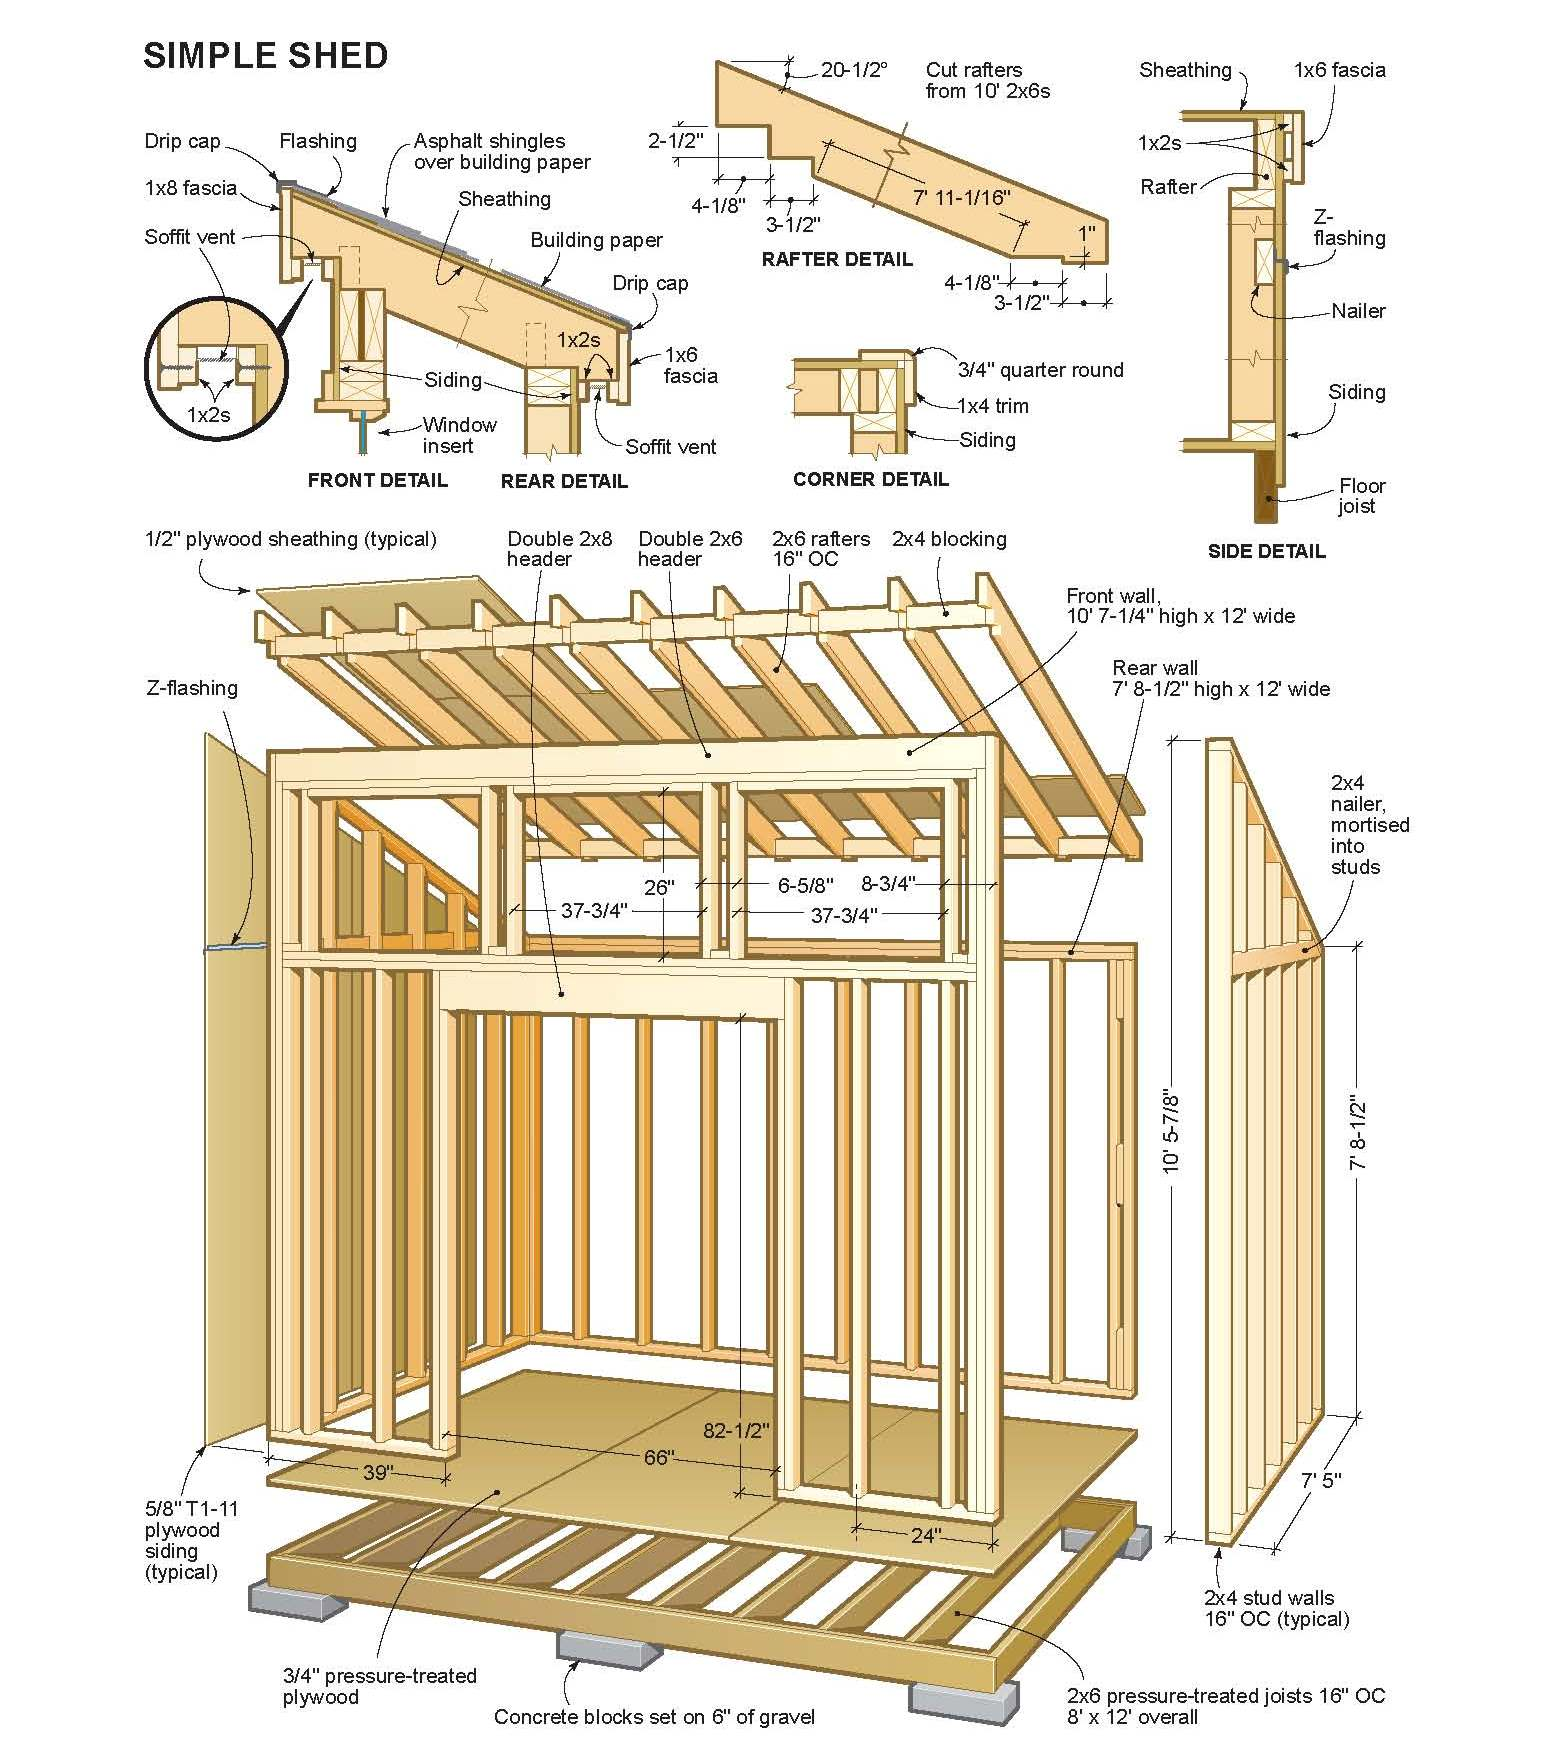 Shed Plans Can Have a Variety of Roof Styles | Shed Blueprints